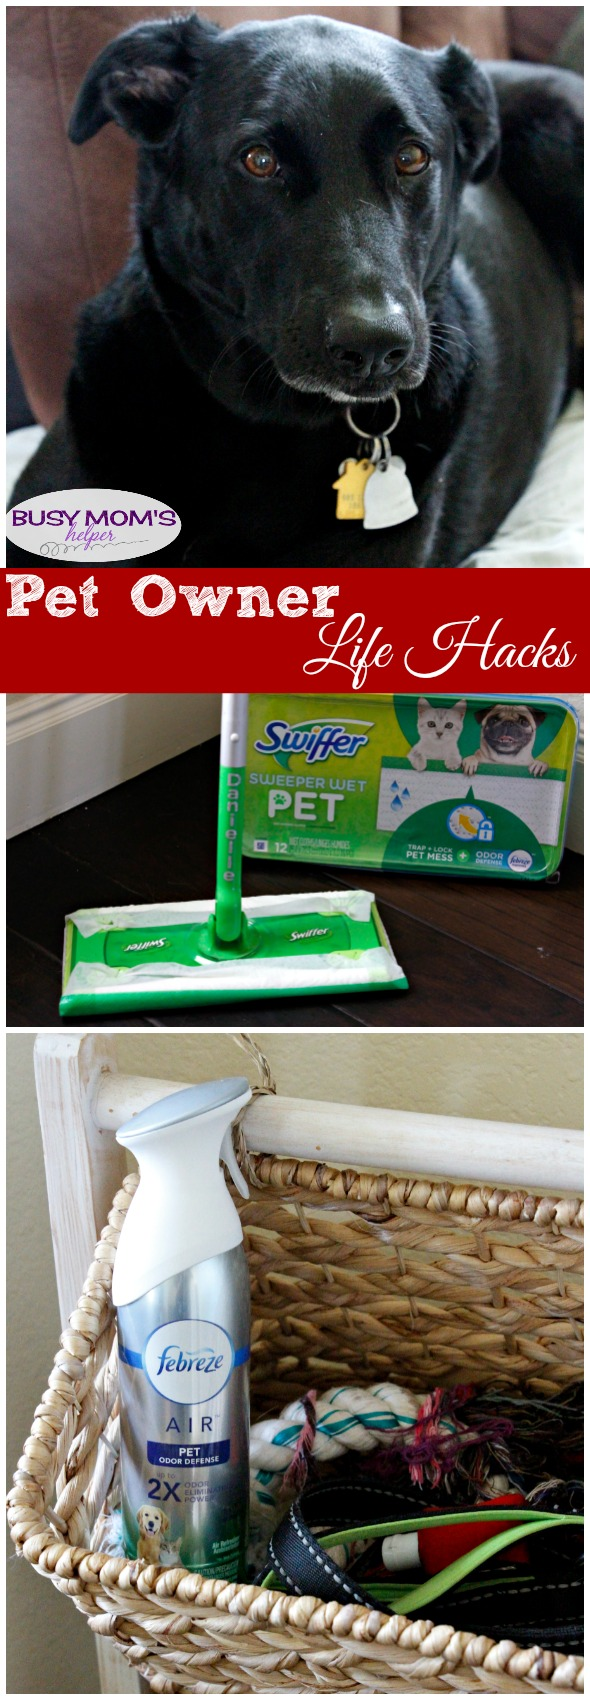 Pet Owner Life Hacks / Great tips for making life with your pet easier #AD #SwifferFanatic #DontSweatYourPet